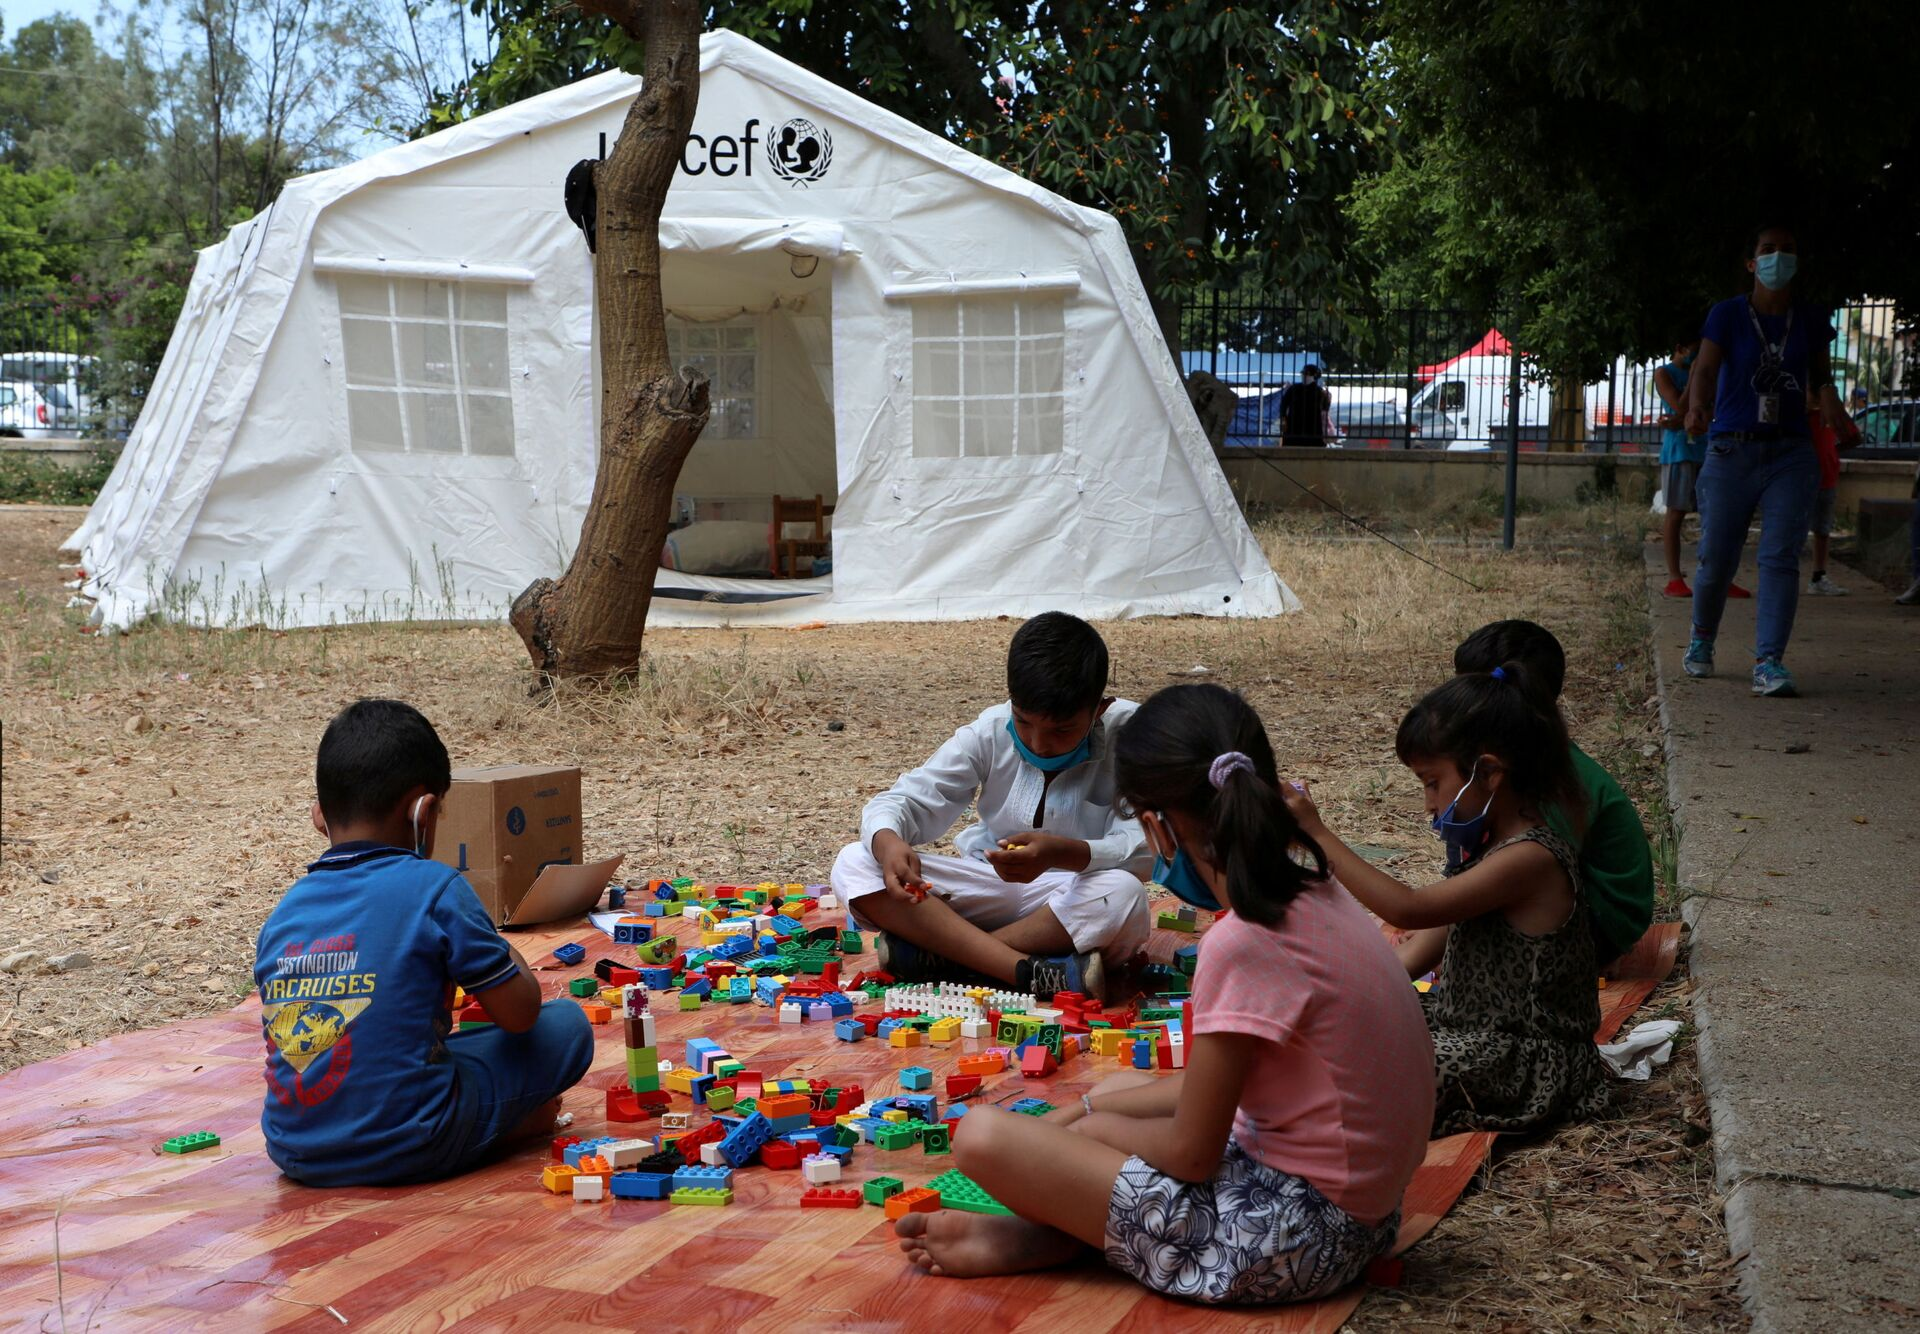 FILE PHOTO: Children play outisde a UNICEF tent put in place to provide psychosocial support to people affected by a massive explosion in Beirut's port area, Lebanon August 20, 2020. Picture taken August 20, 2020. - Sputnik International, 1920, 07.09.2021